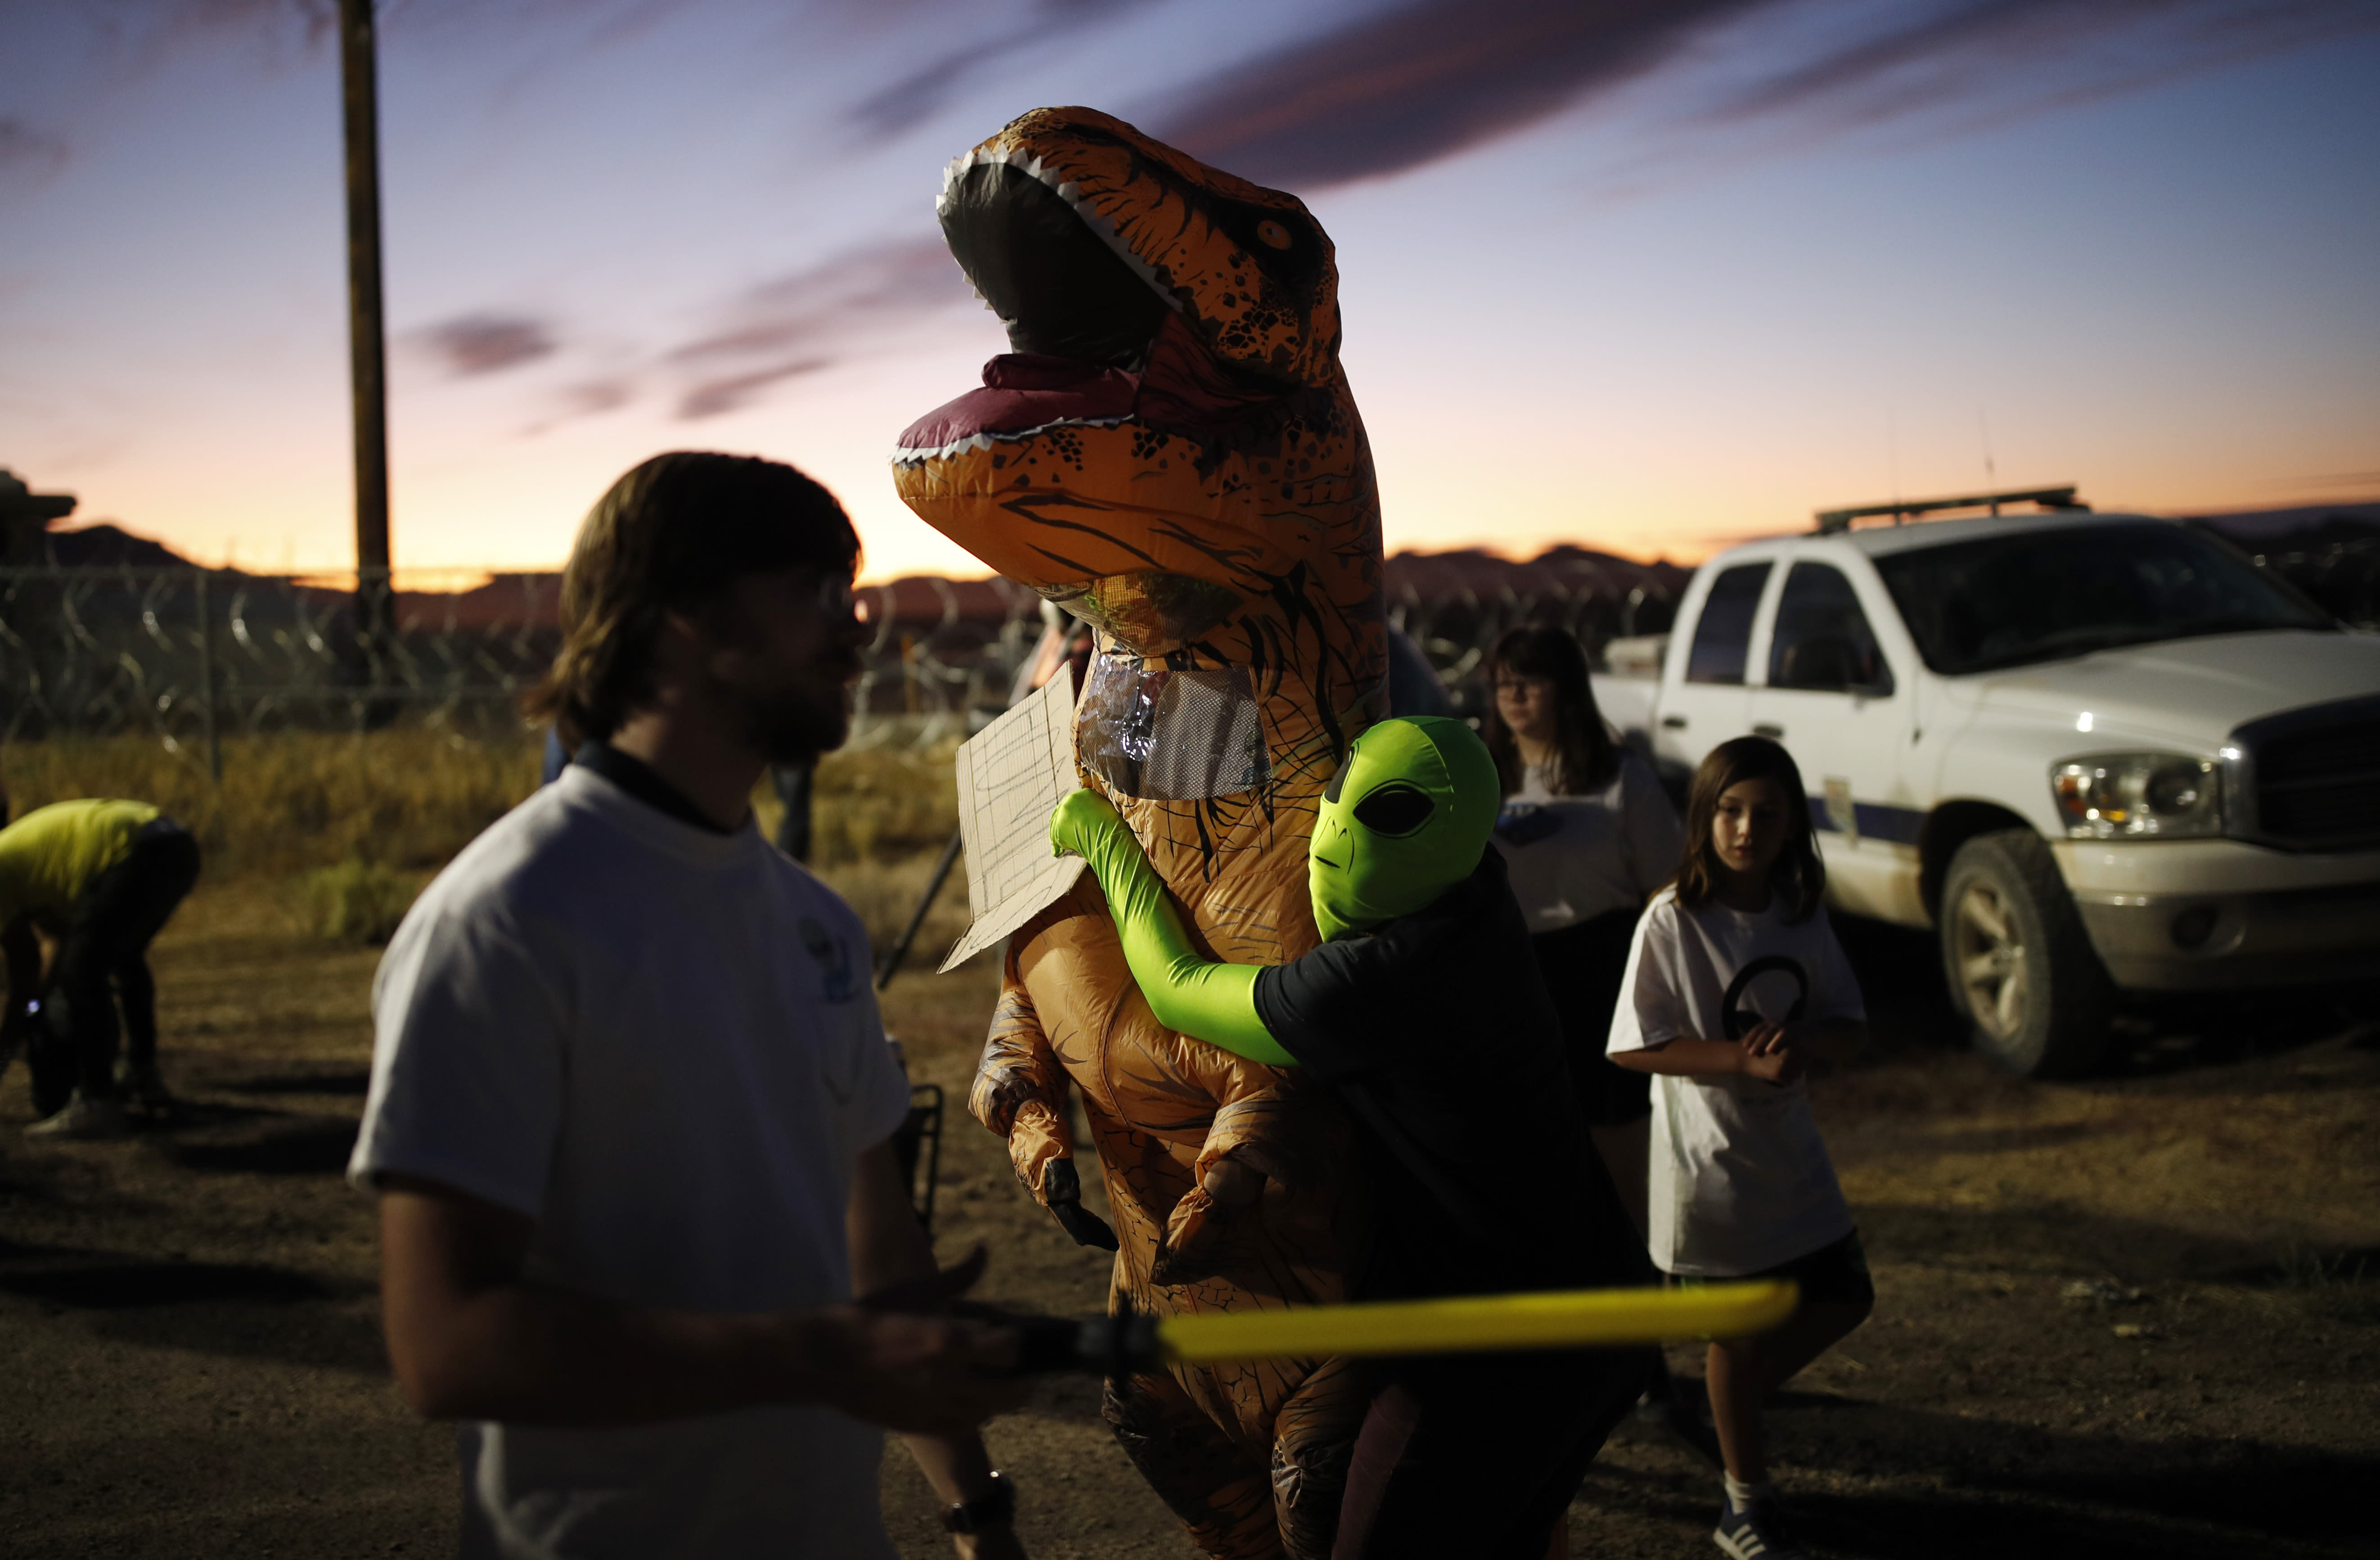 """People dressed in costumes visit an entrance to the Nevada Test and Training Range near Area 51, Friday, Sept. 20, 2019, near Rachel, Nev. People came to visit the gate inspired by the """"Storm Area 51"""" internet hoax. (AP Photo/John Locher)"""